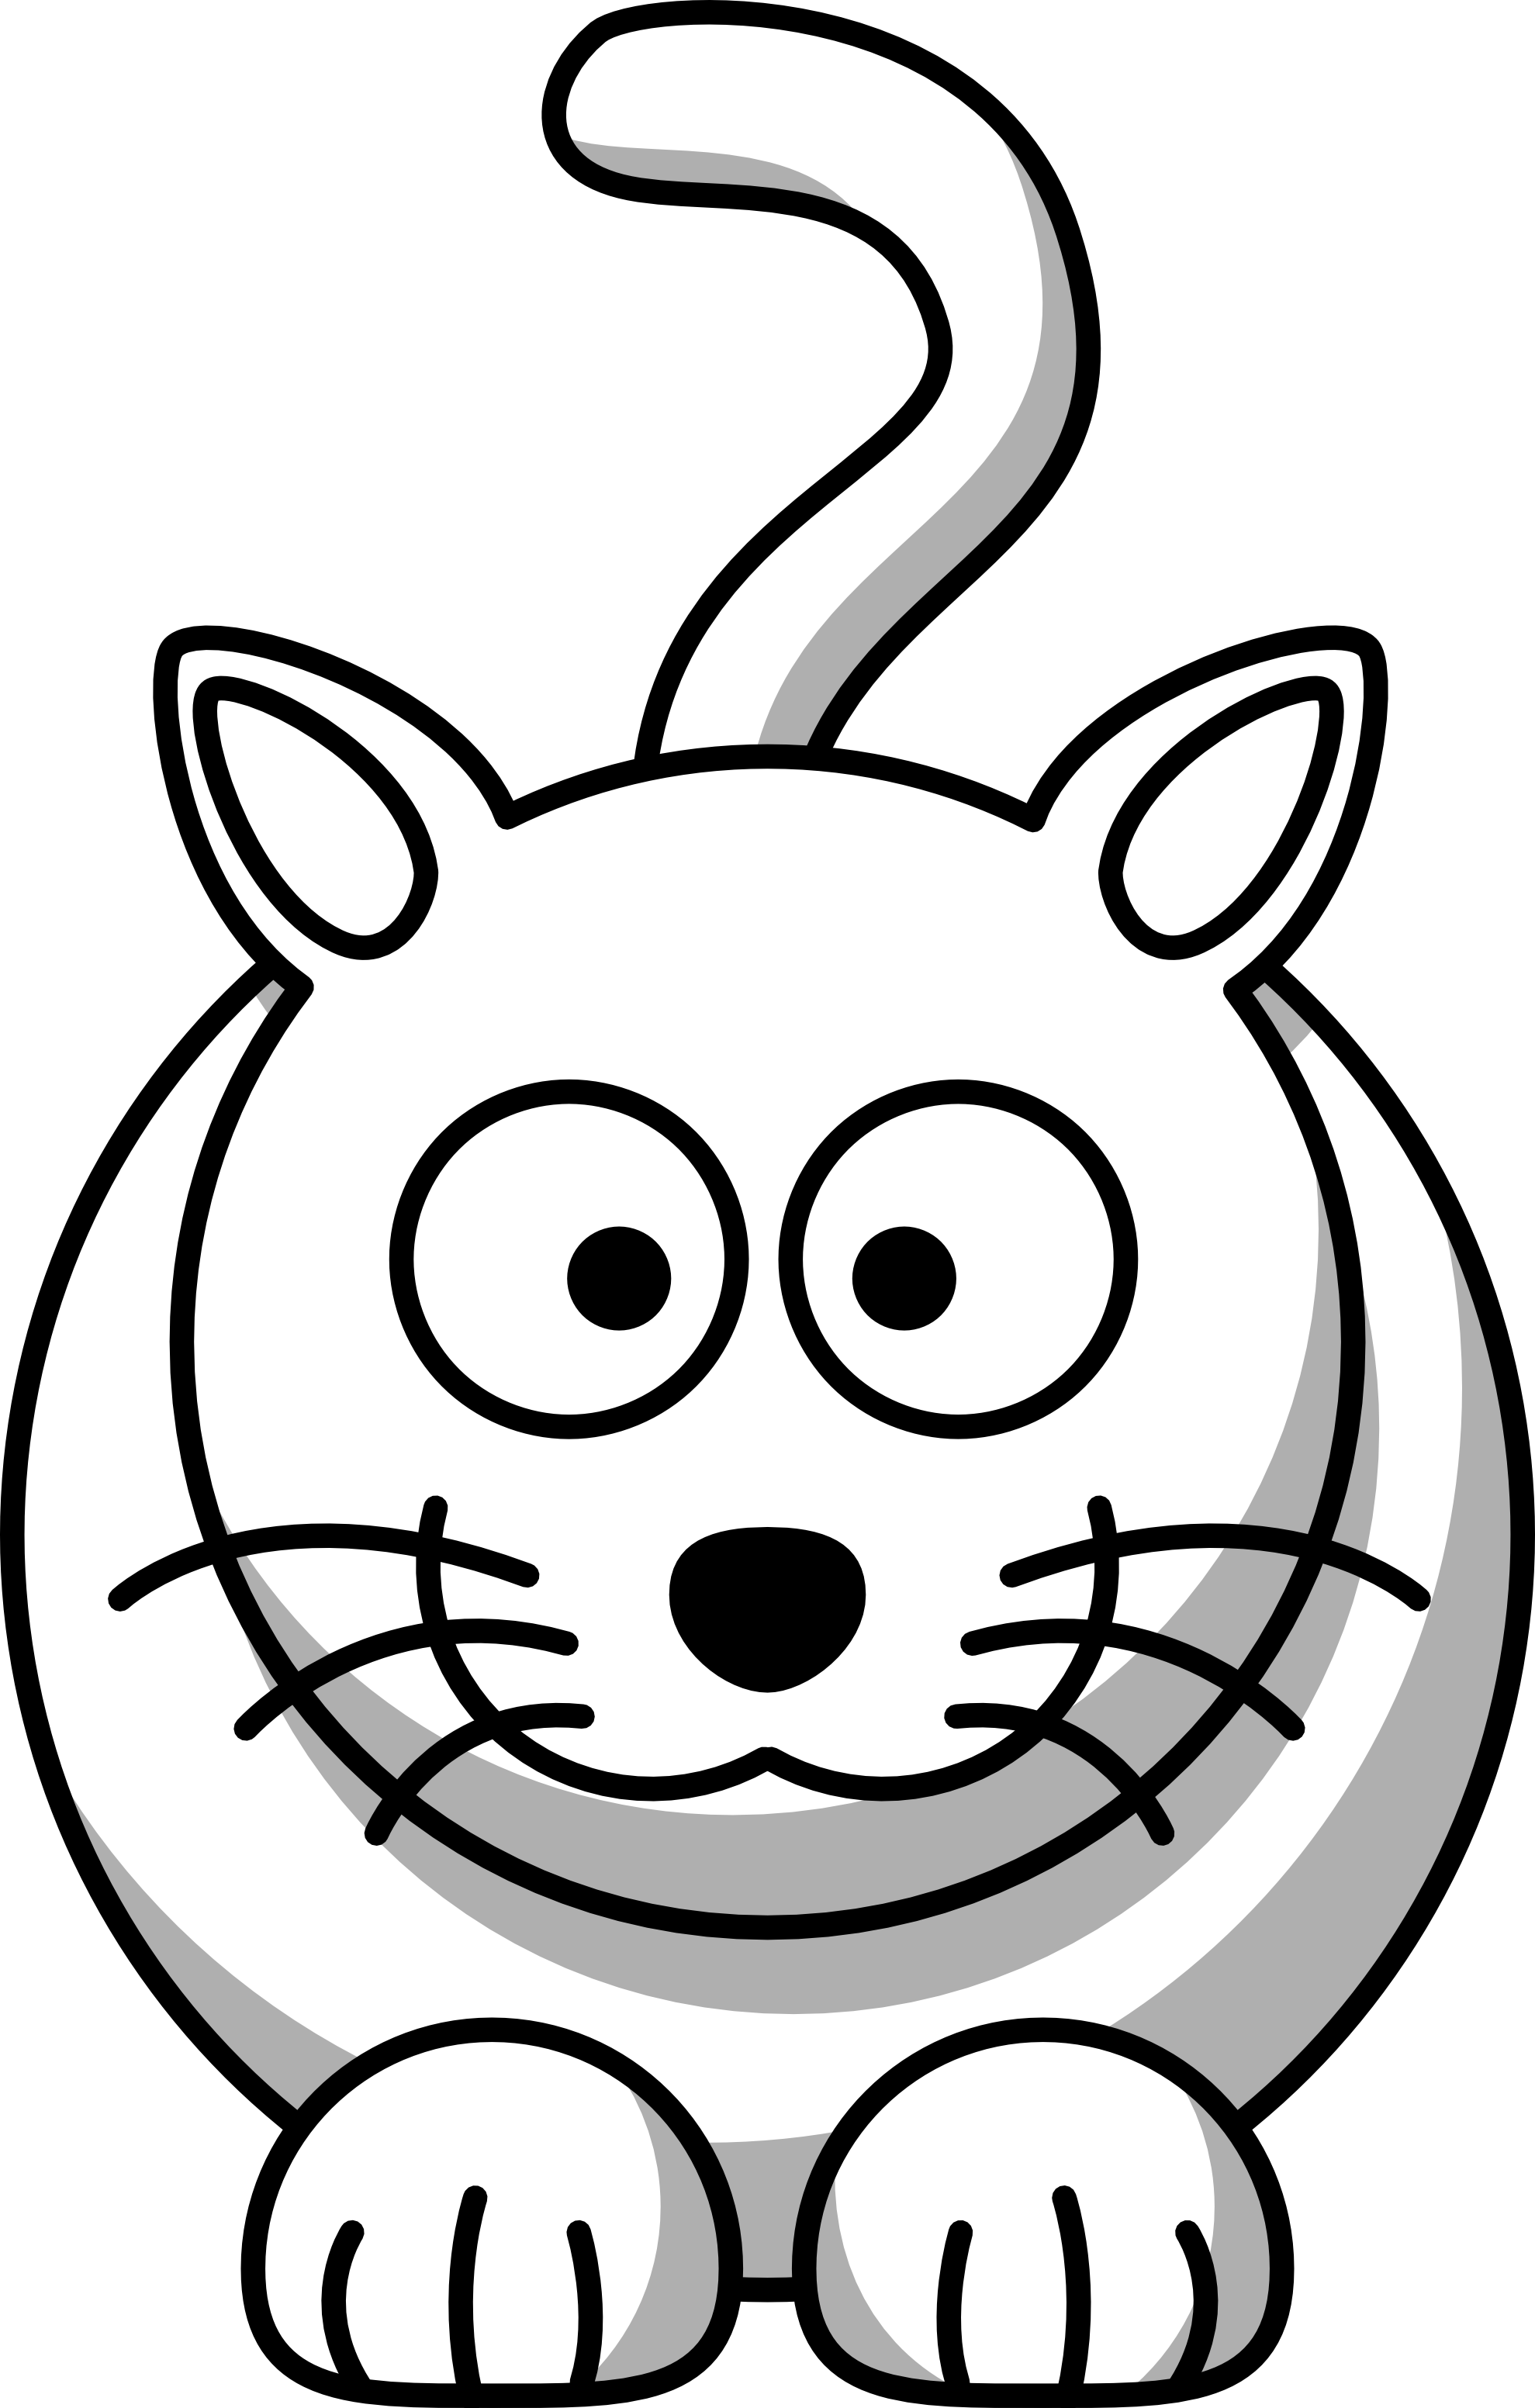 Png farm animals transparent. Land clipart black and white